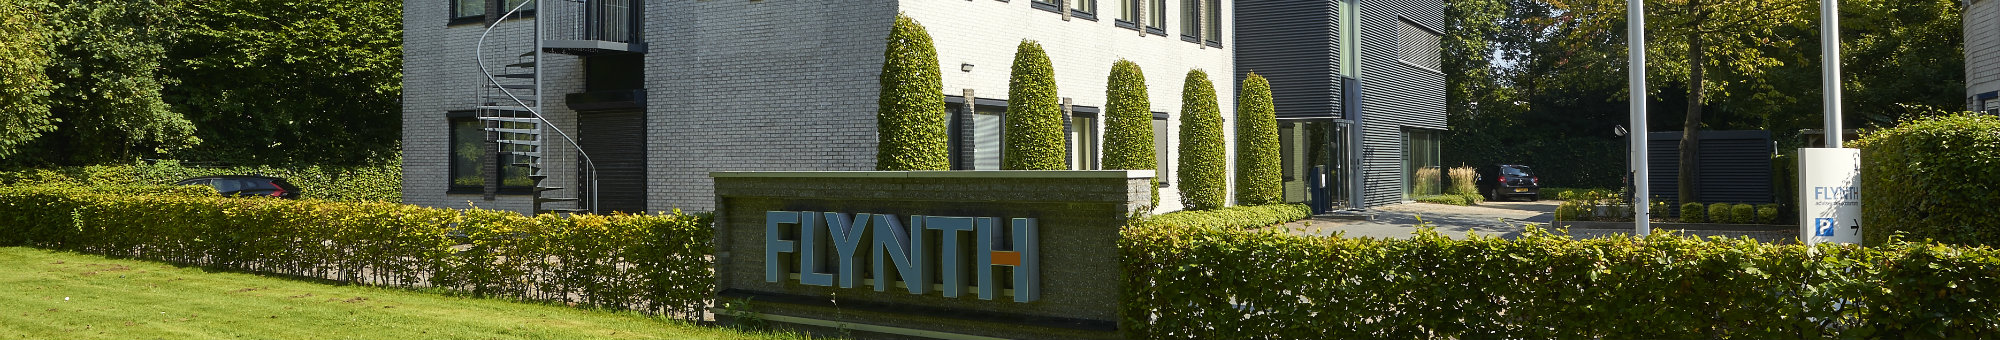 Flynth adviseurs en accountants in Emmeloord